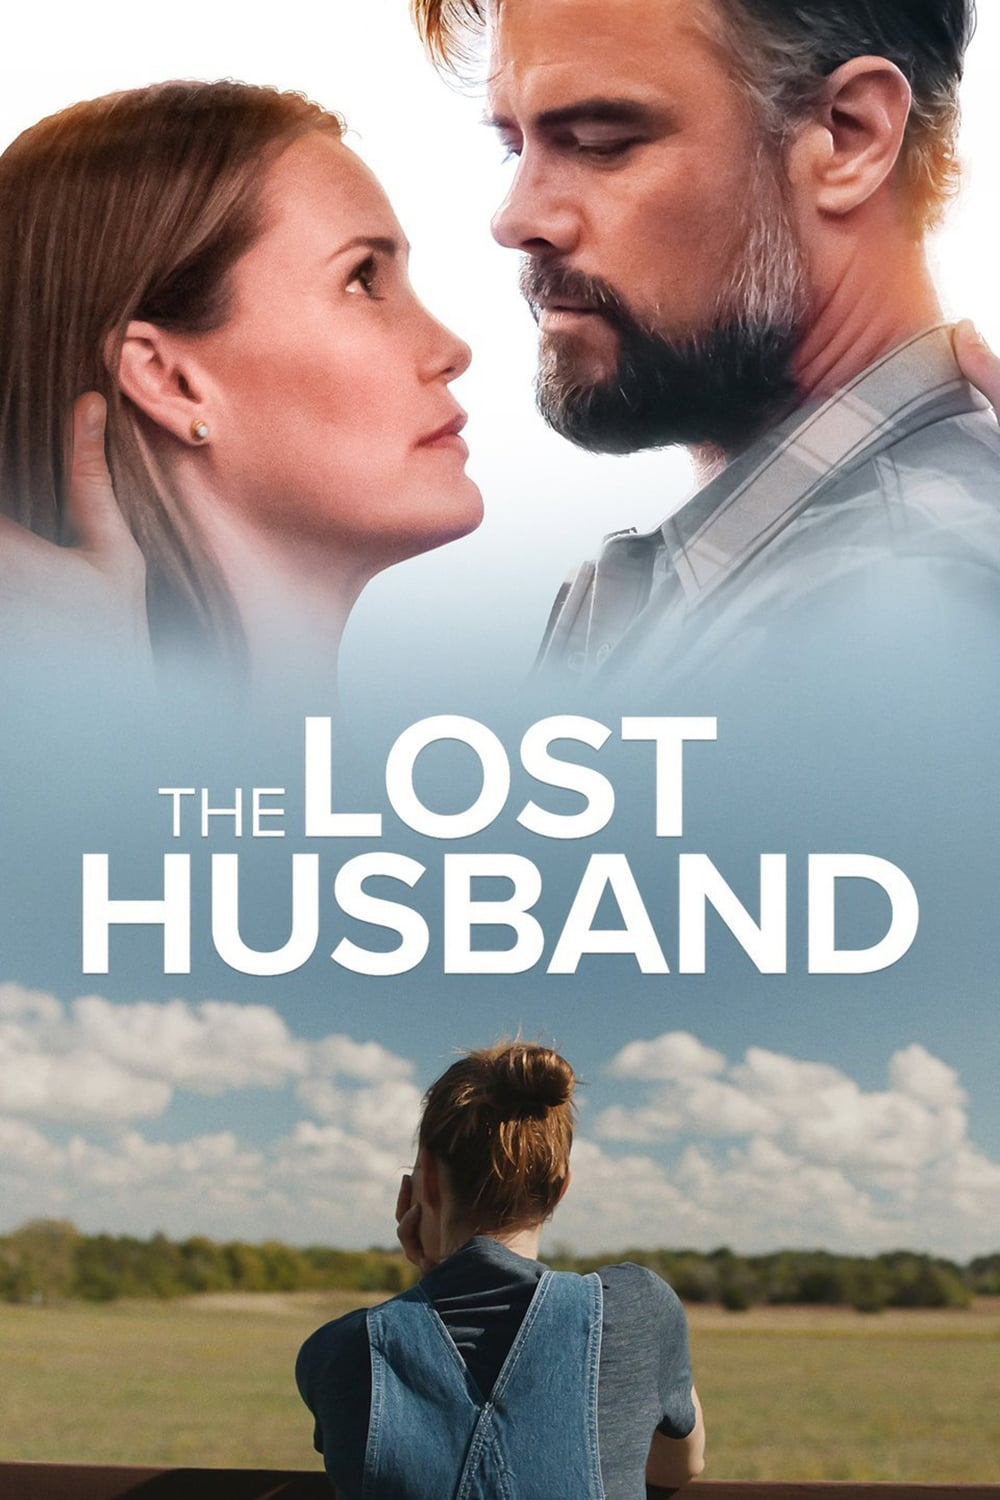 The Lost Husband Movie Streaming Online